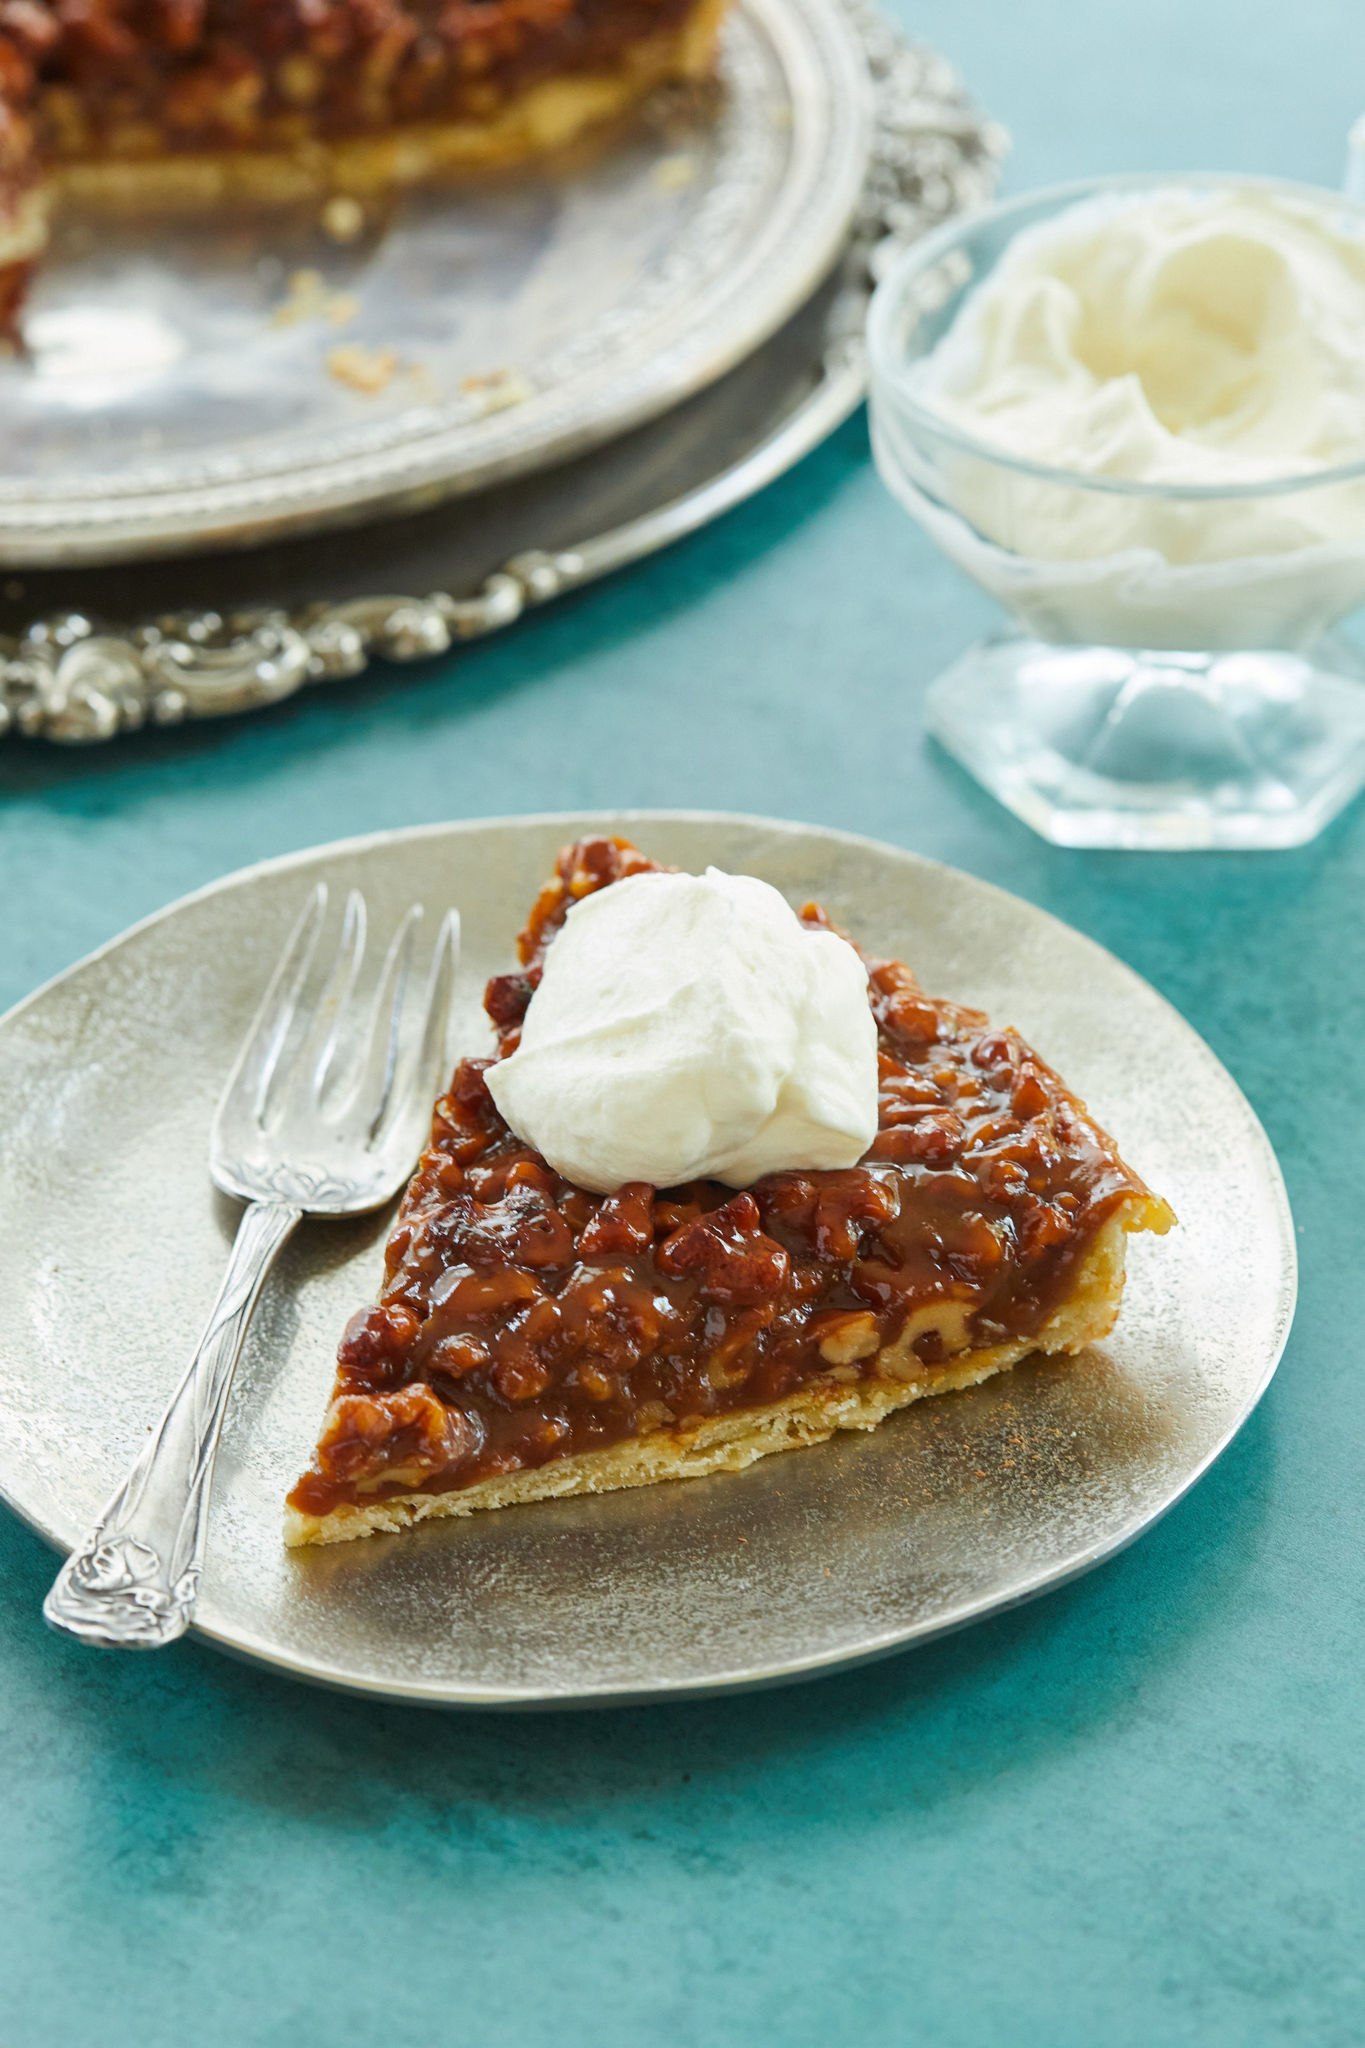 A slice of my walnut caramel tart, topped with whipped cream.